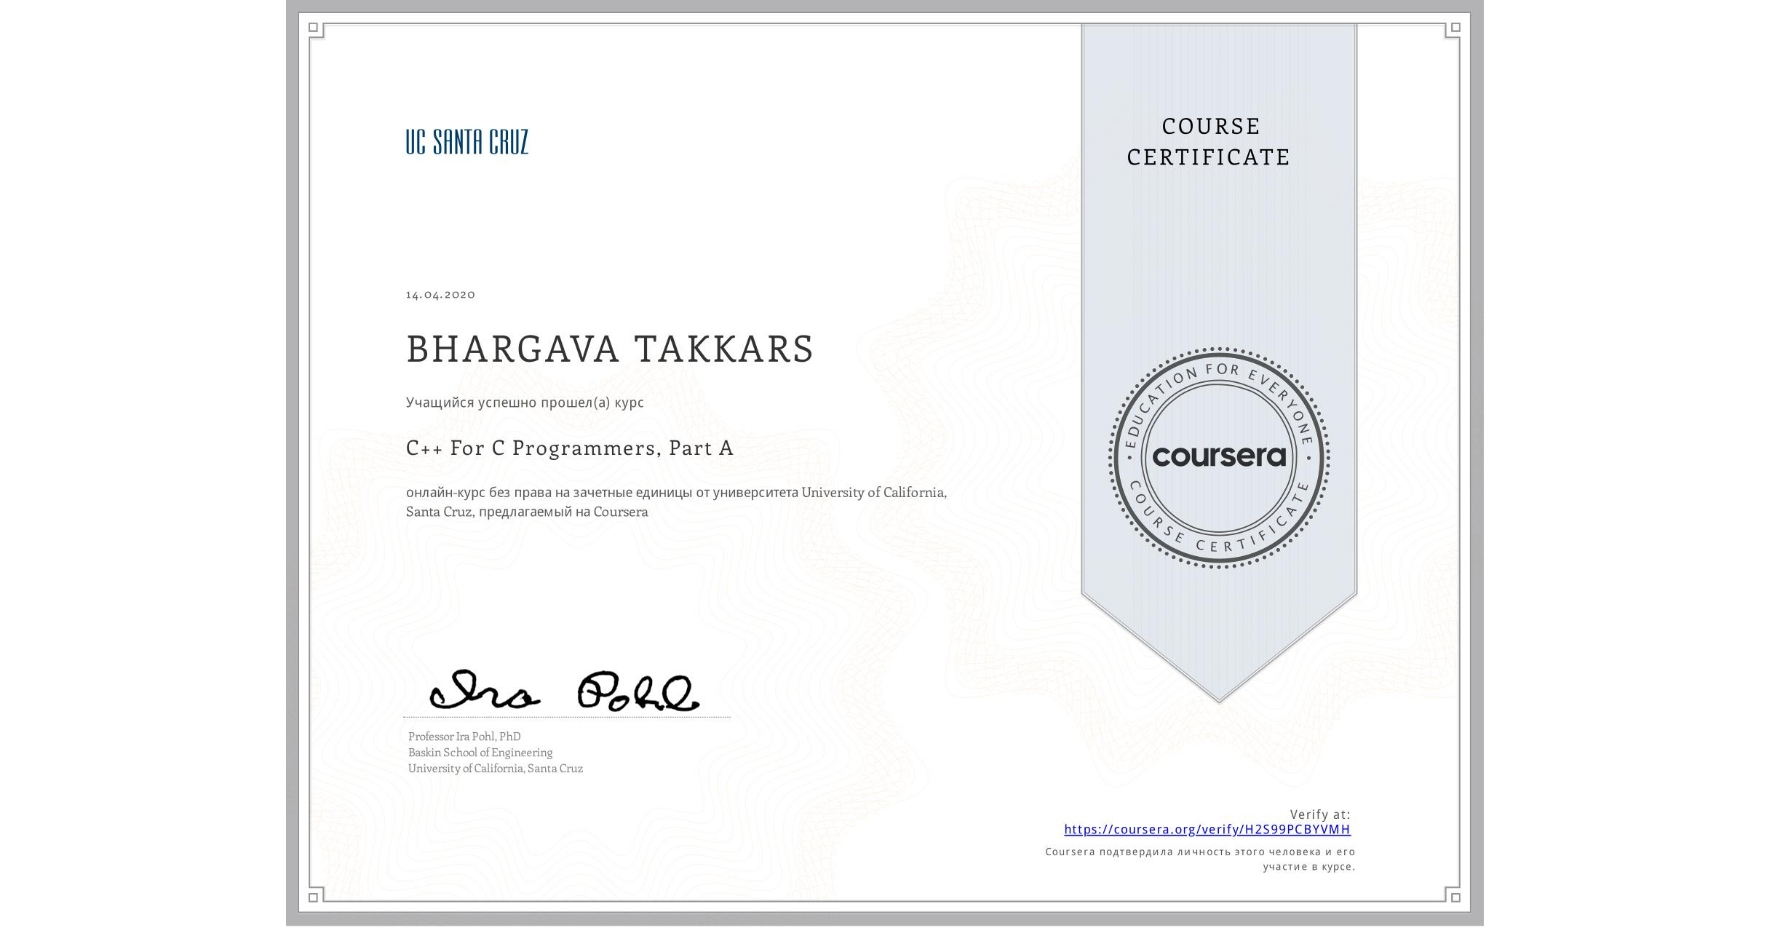 View certificate for BHARGAVA TAKKARS, C++ For C Programmers, Part A, an online non-credit course authorized by University of California, Santa Cruz and offered through Coursera